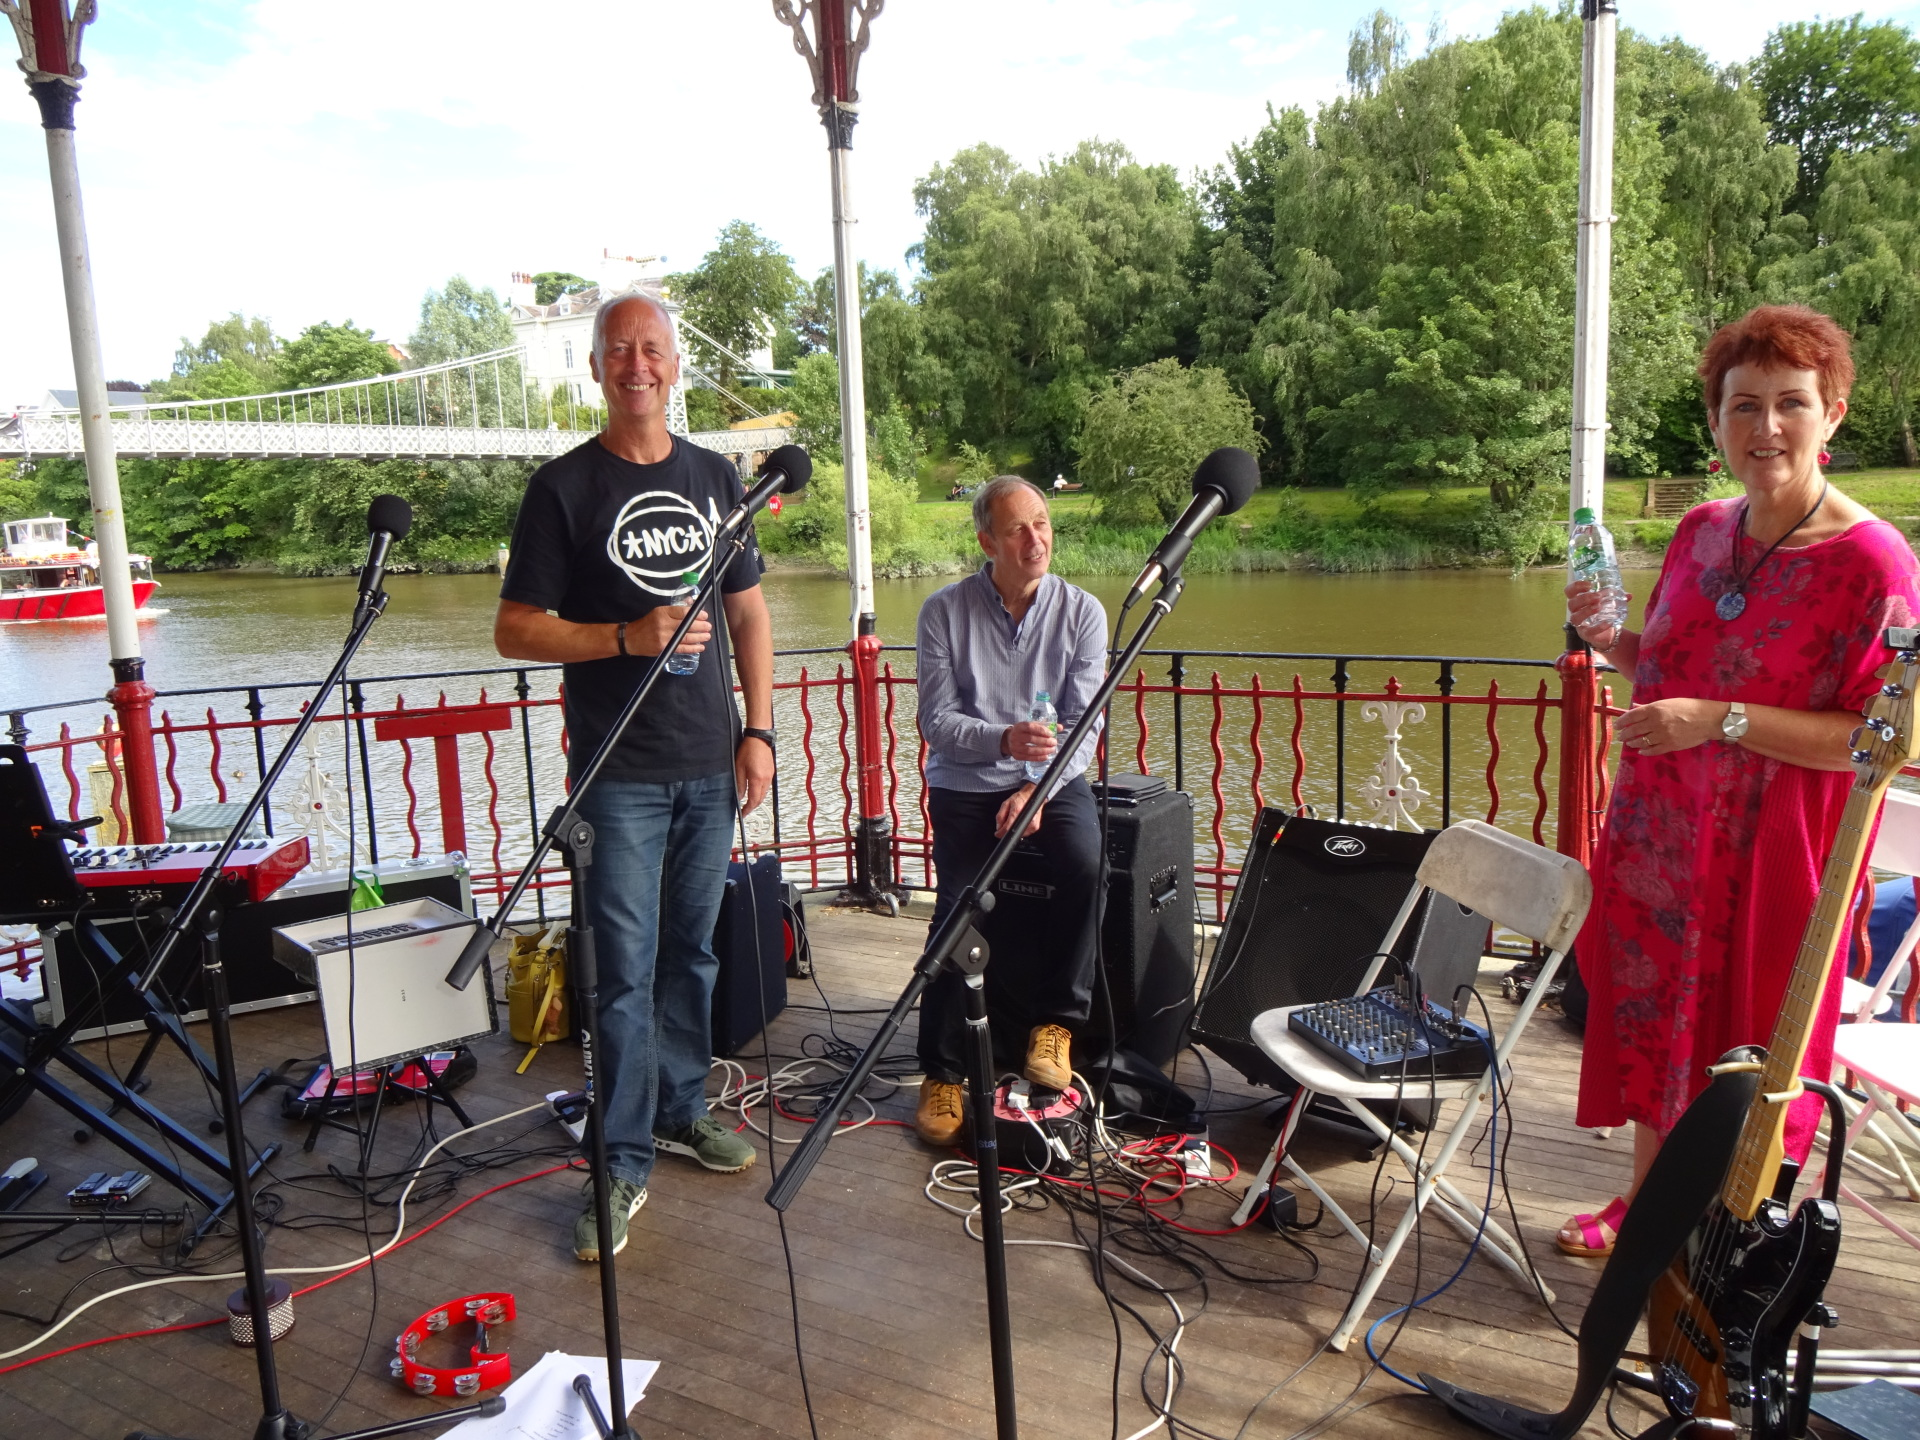 Magical day on Chester Bandstand